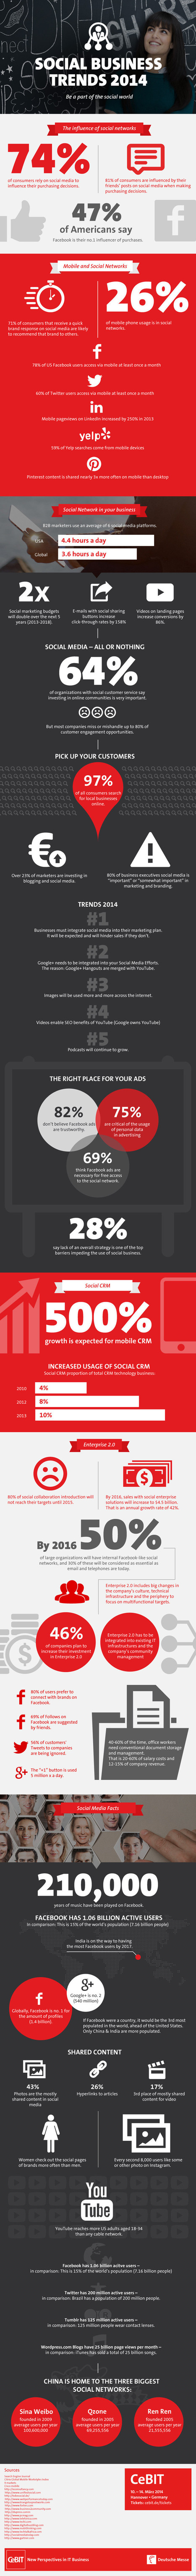 Social Business Trends 2014 [INFOGRAPHIC] | Startup Revolution | Scoop.it